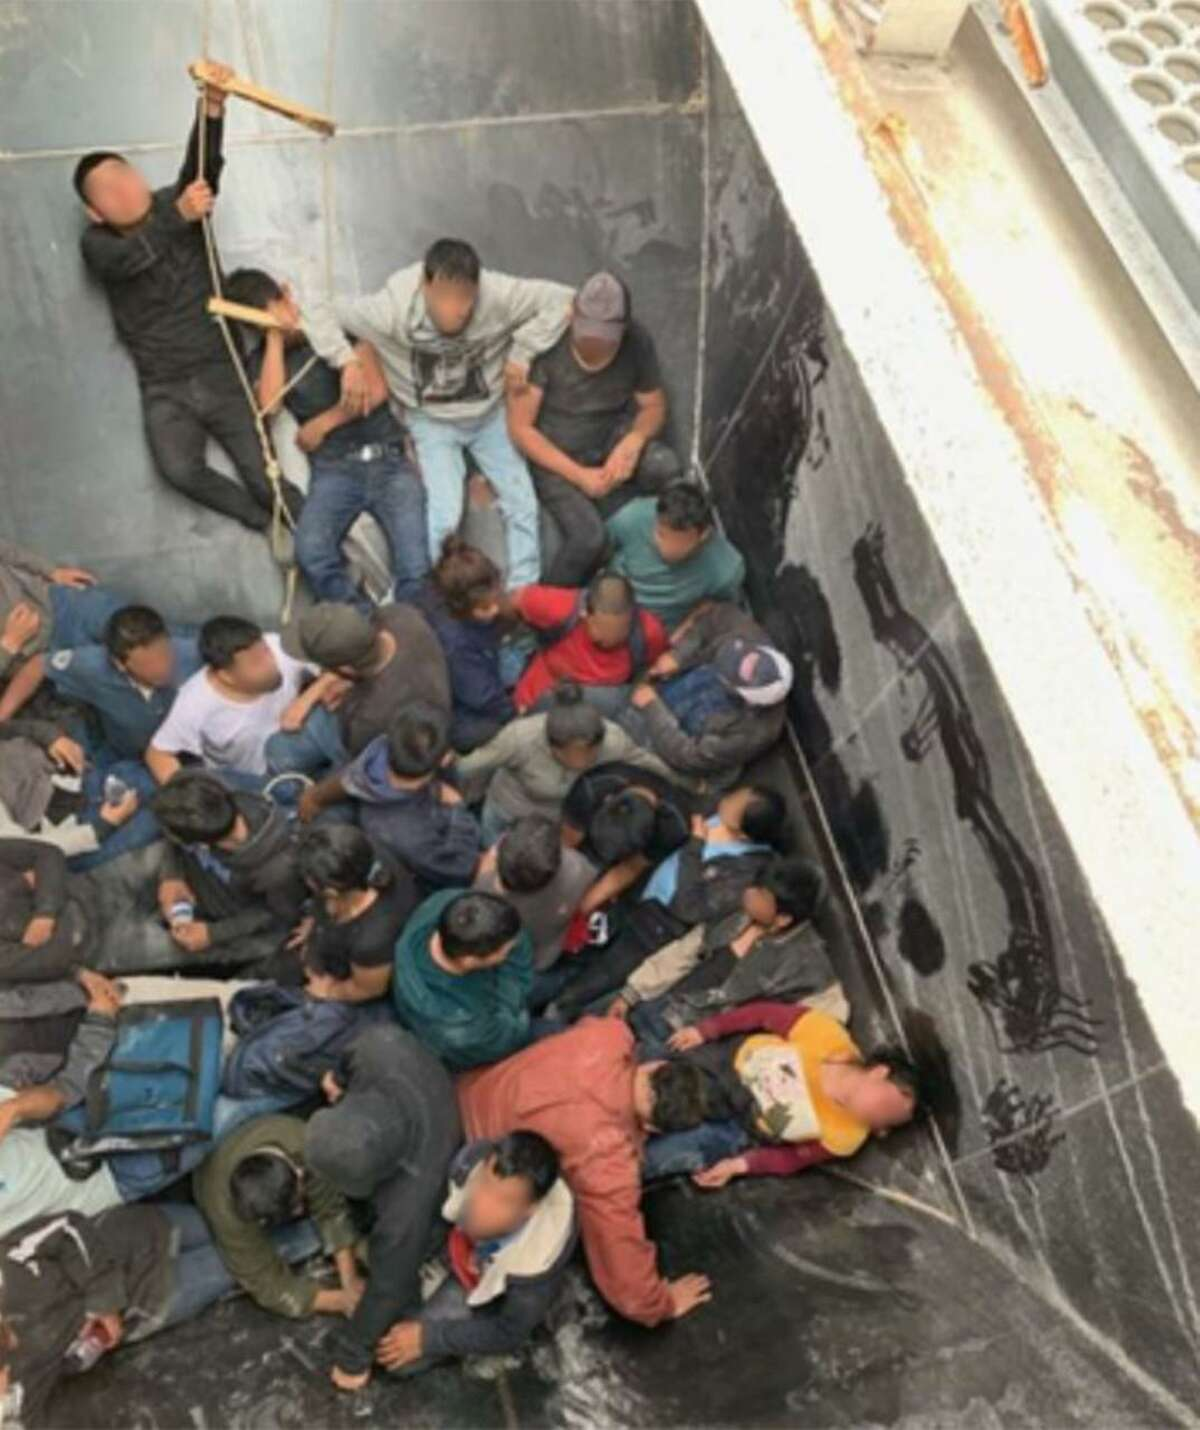 U.S. Border Patrol agents assigned to the Hebbronville Station rescued an unresponsive woman found inside a grain hopper railcar and detained a large group of immigrants who had crossed the border illegally.